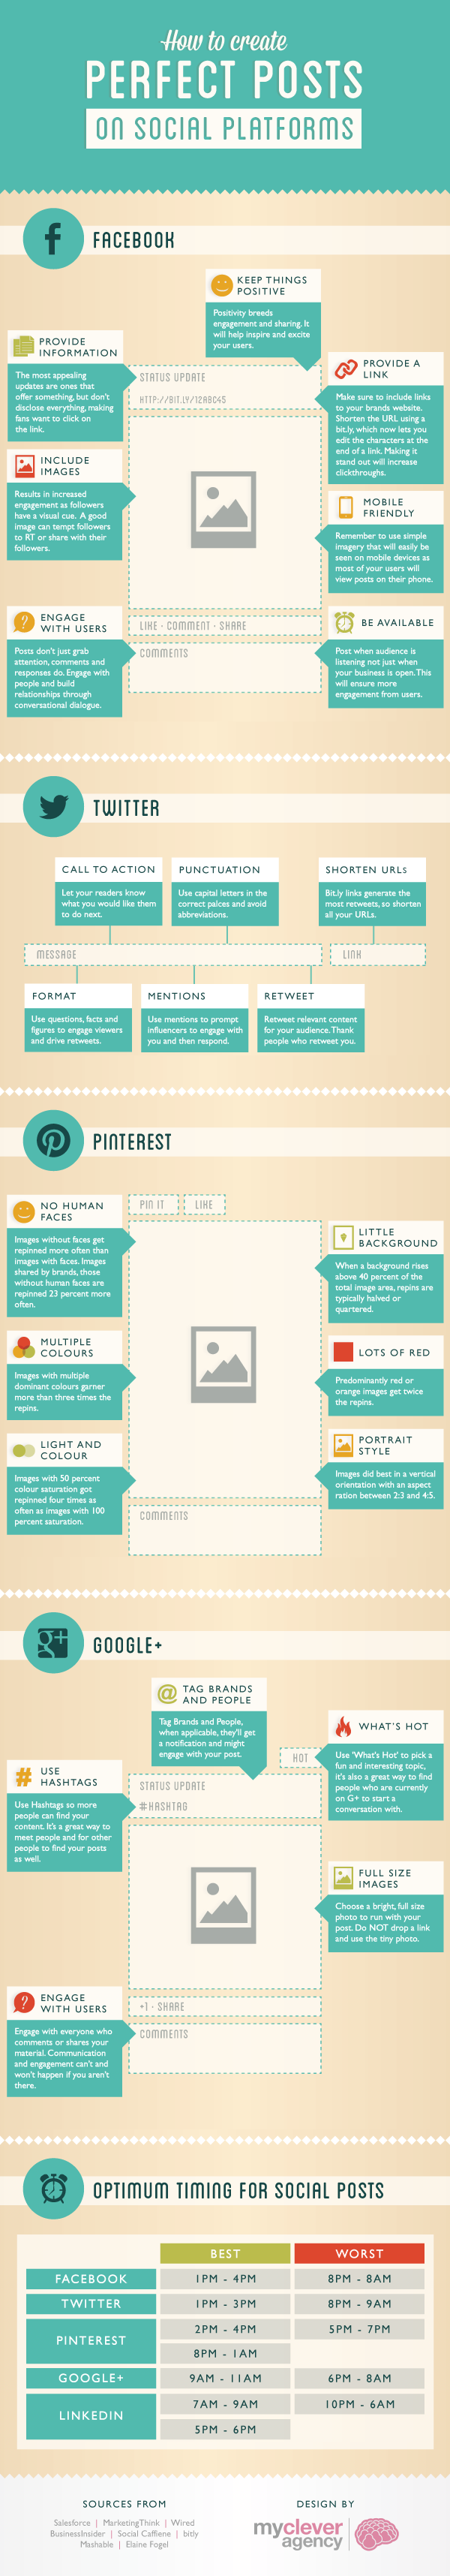 Best Times To Post Best Times To Post On Fb Twitter Pinterest Linkedin And Google Plus Social Media Infographic Pinterest Infographic Blog Social Media